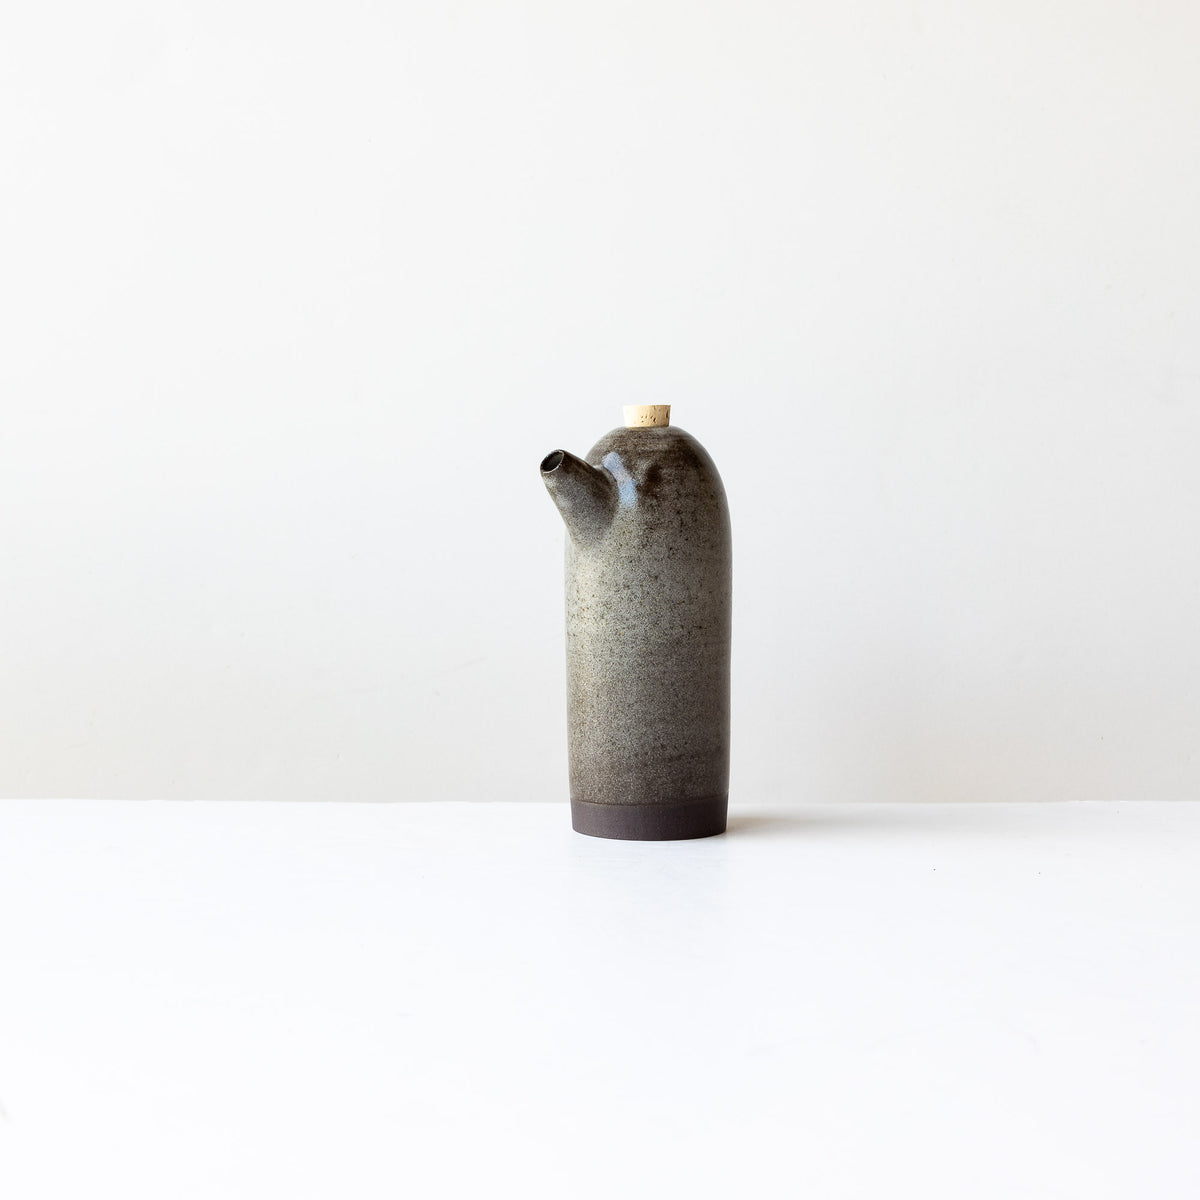 Dark Grey Handmade Stoneware Vinegar Bottle - Sold by Chic & Basta